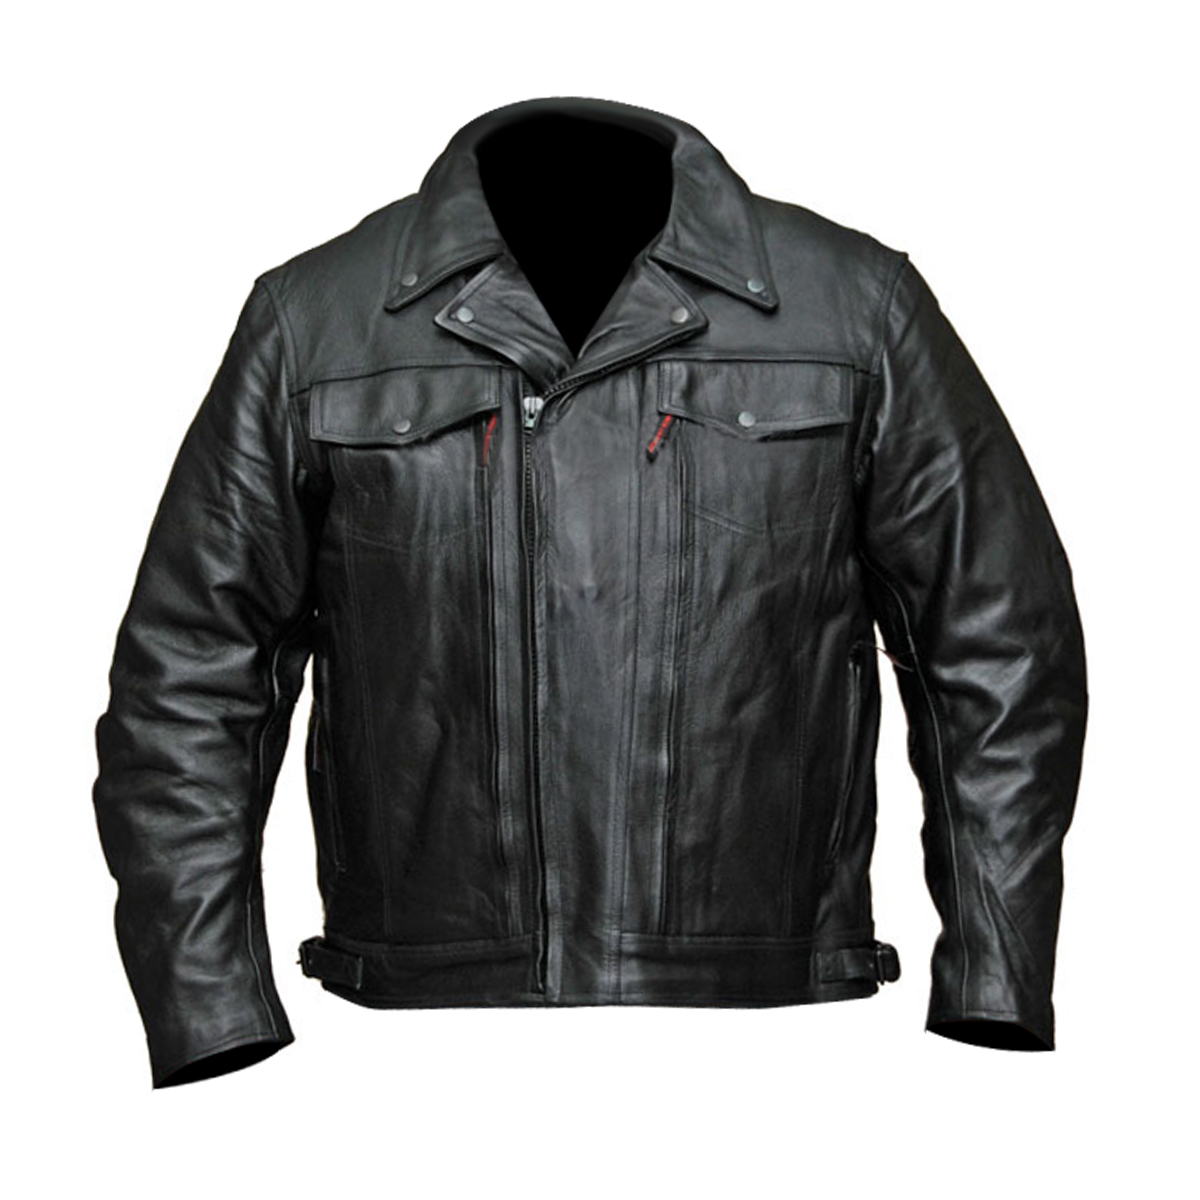 motorcycle jackets menu0027s double pistol pete-chief premium leather motorcycle jacket GAAUNAM